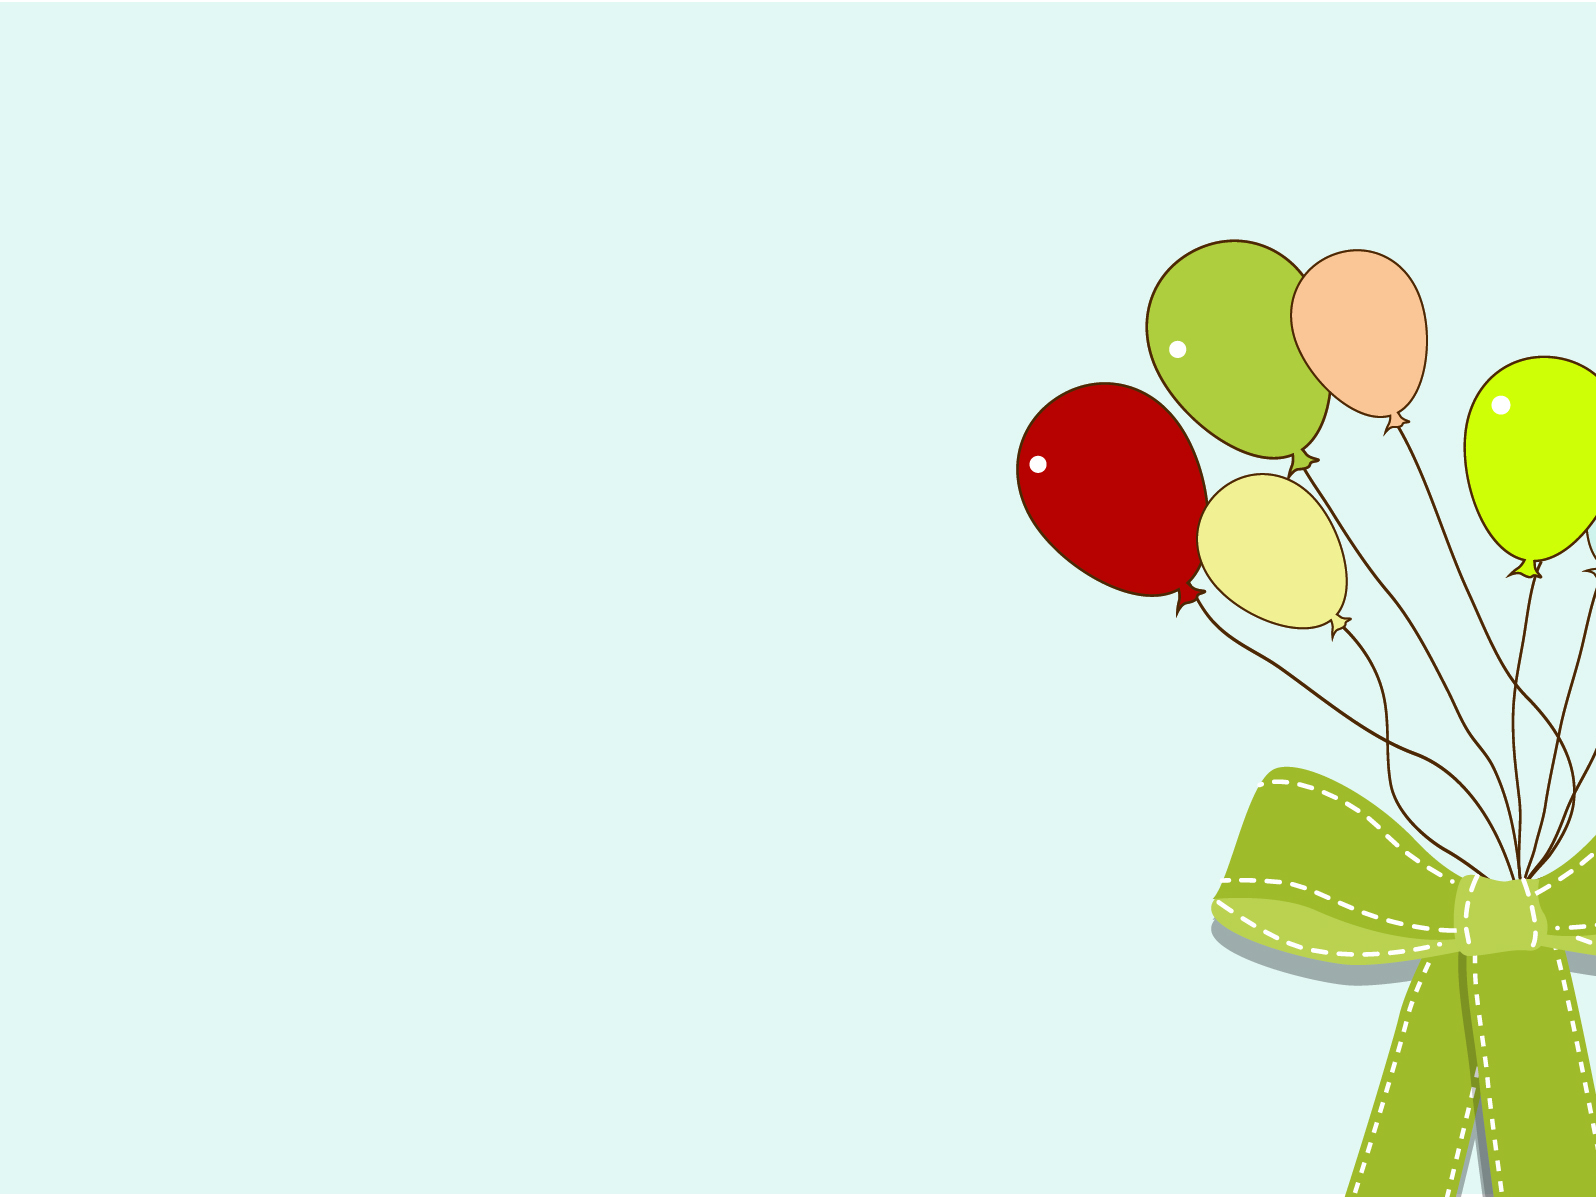 Balloon Rainbow PPT Backgrounds